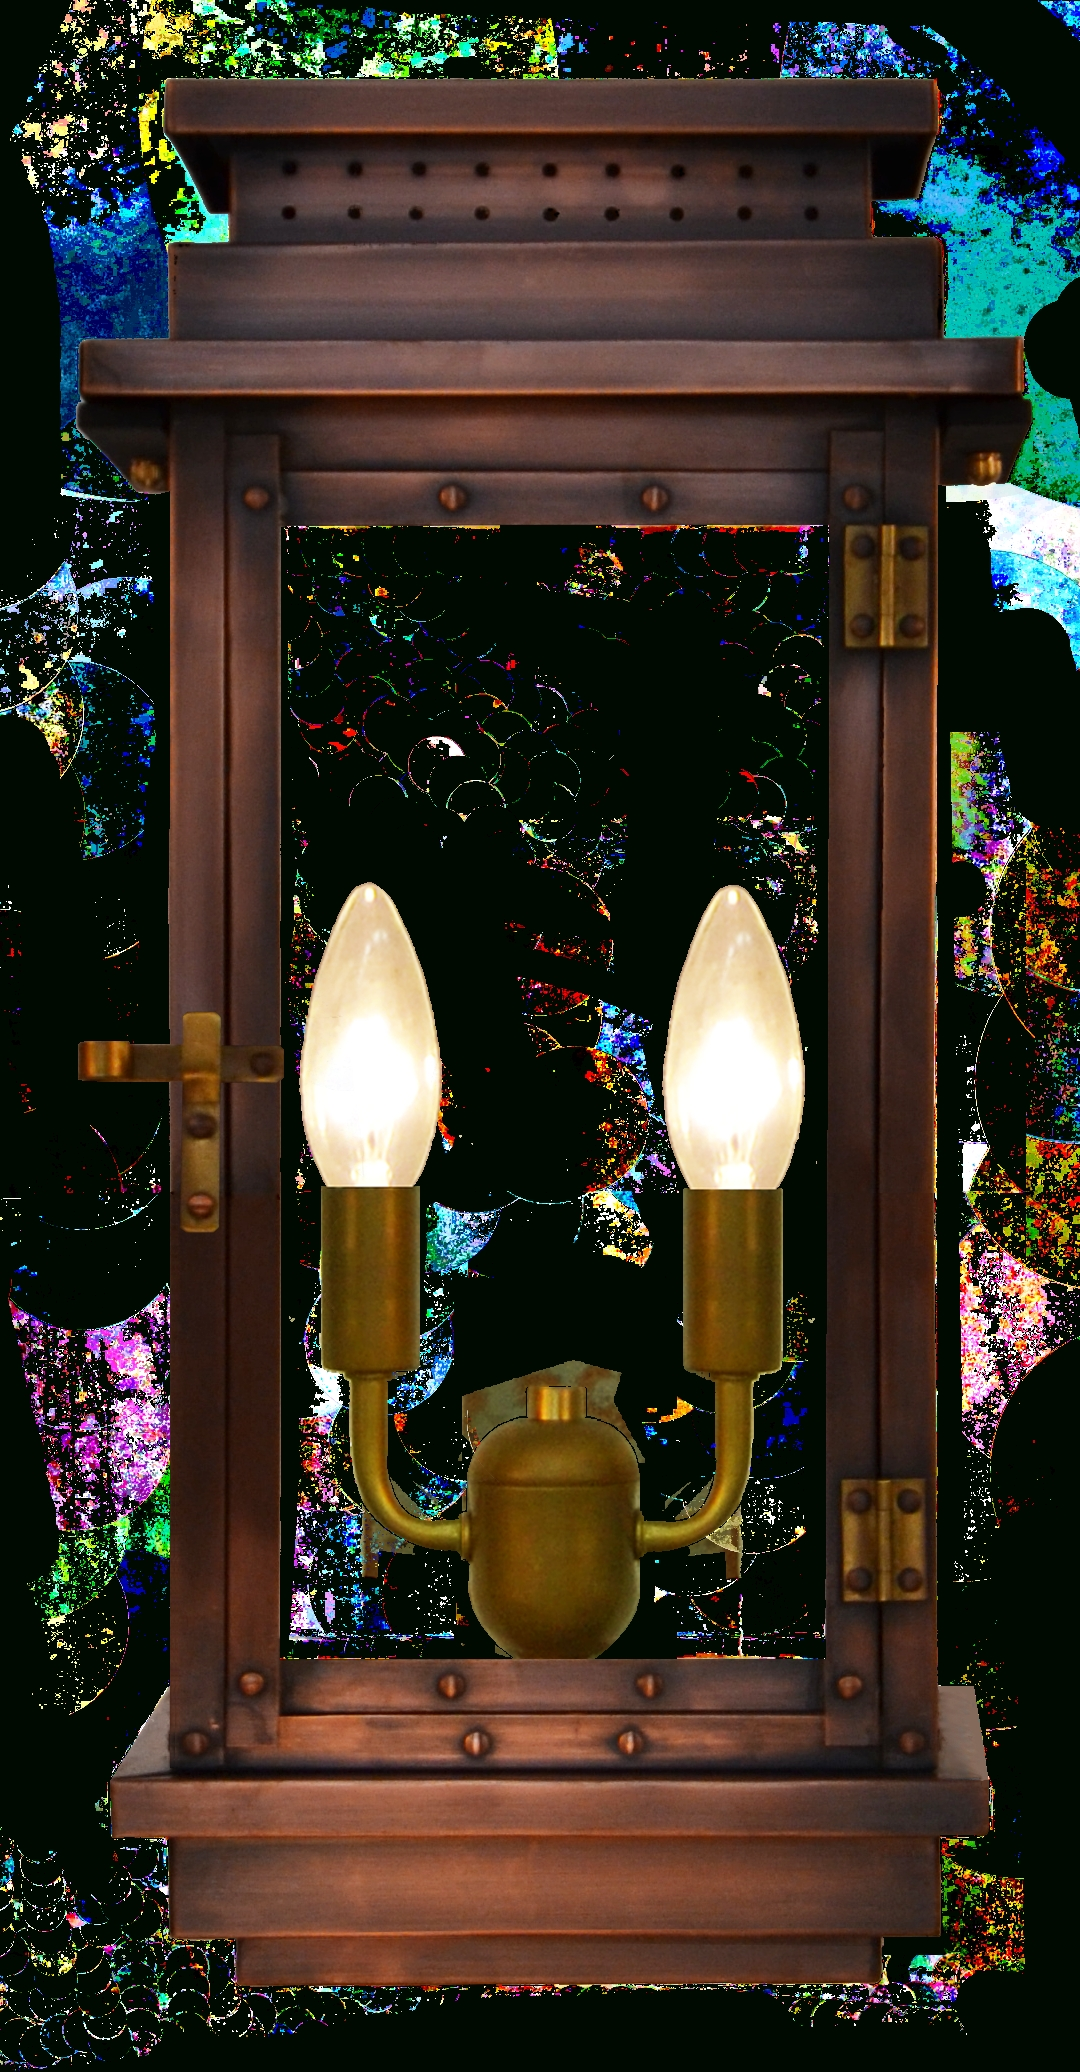 Preferred Contempo Gas Or Electric Copper Lantern – Outdoor Lighting & Lamps Pertaining To Copper Outdoor Electric Lanterns (View 8 of 20)